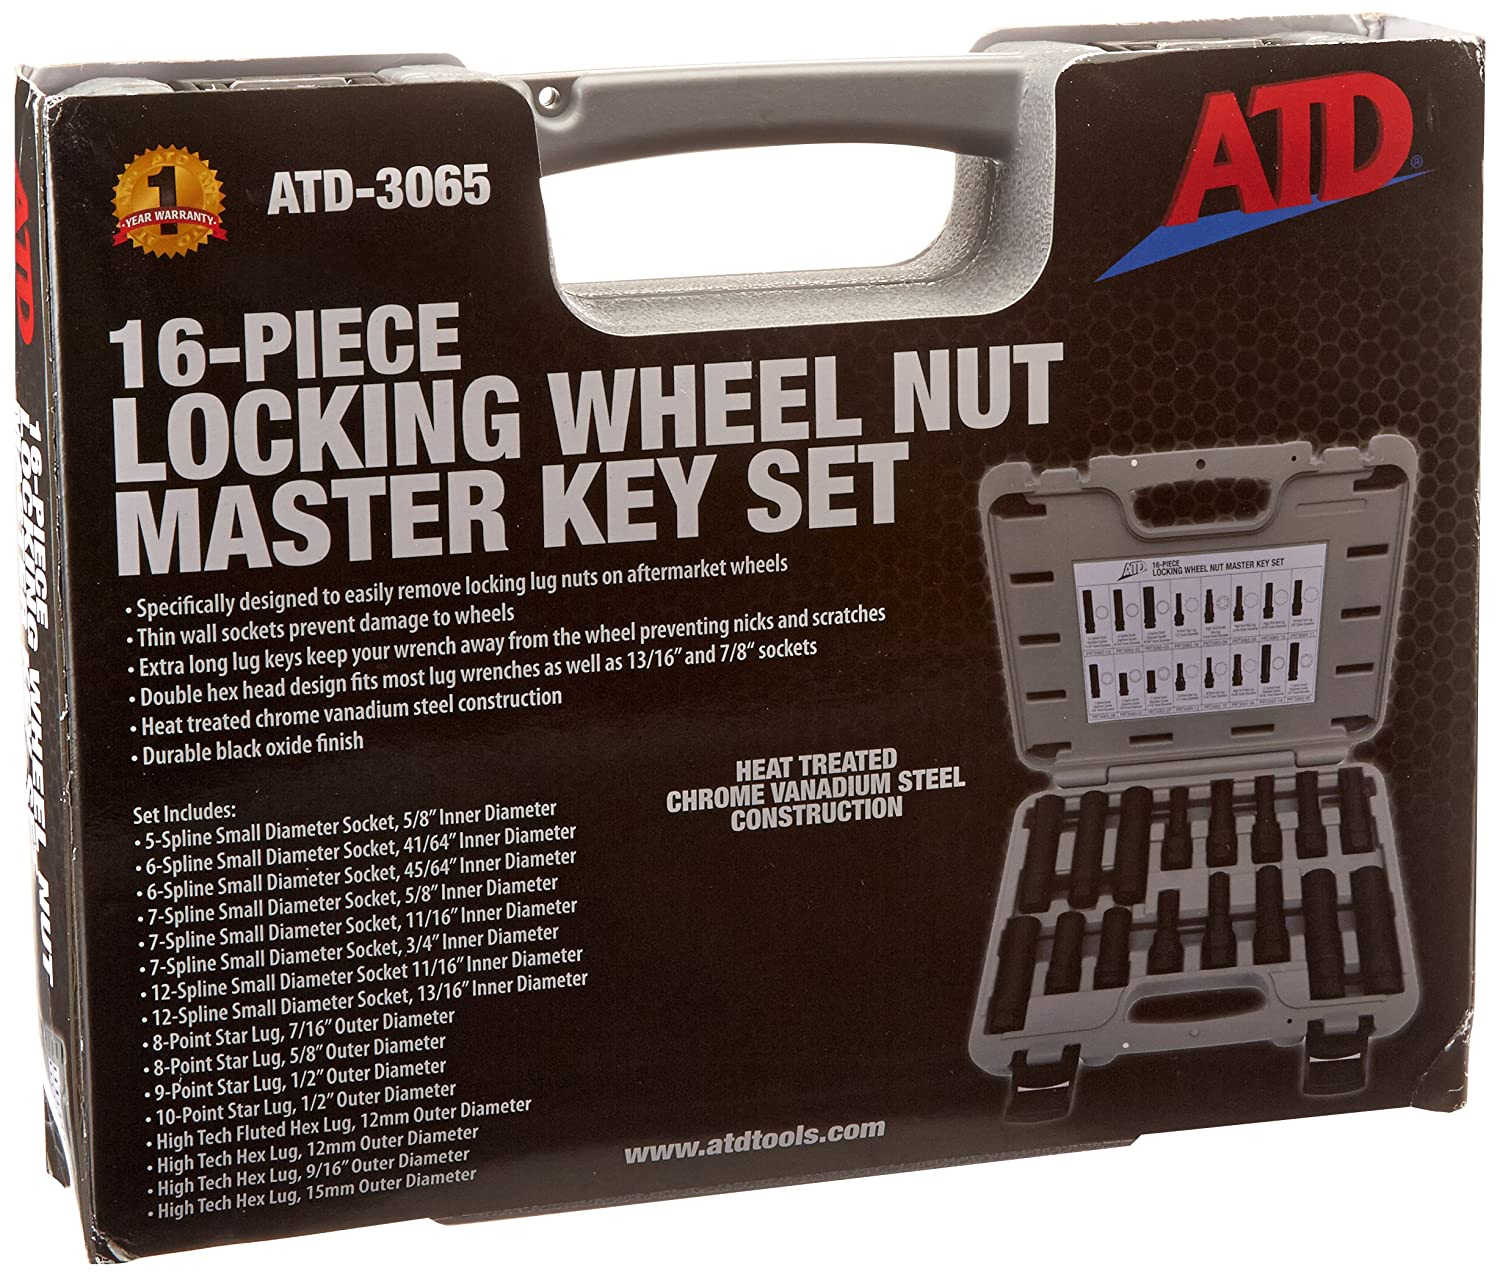 ATD Tools 3065 16-Piece Locking Wheel Nut Master Key Set